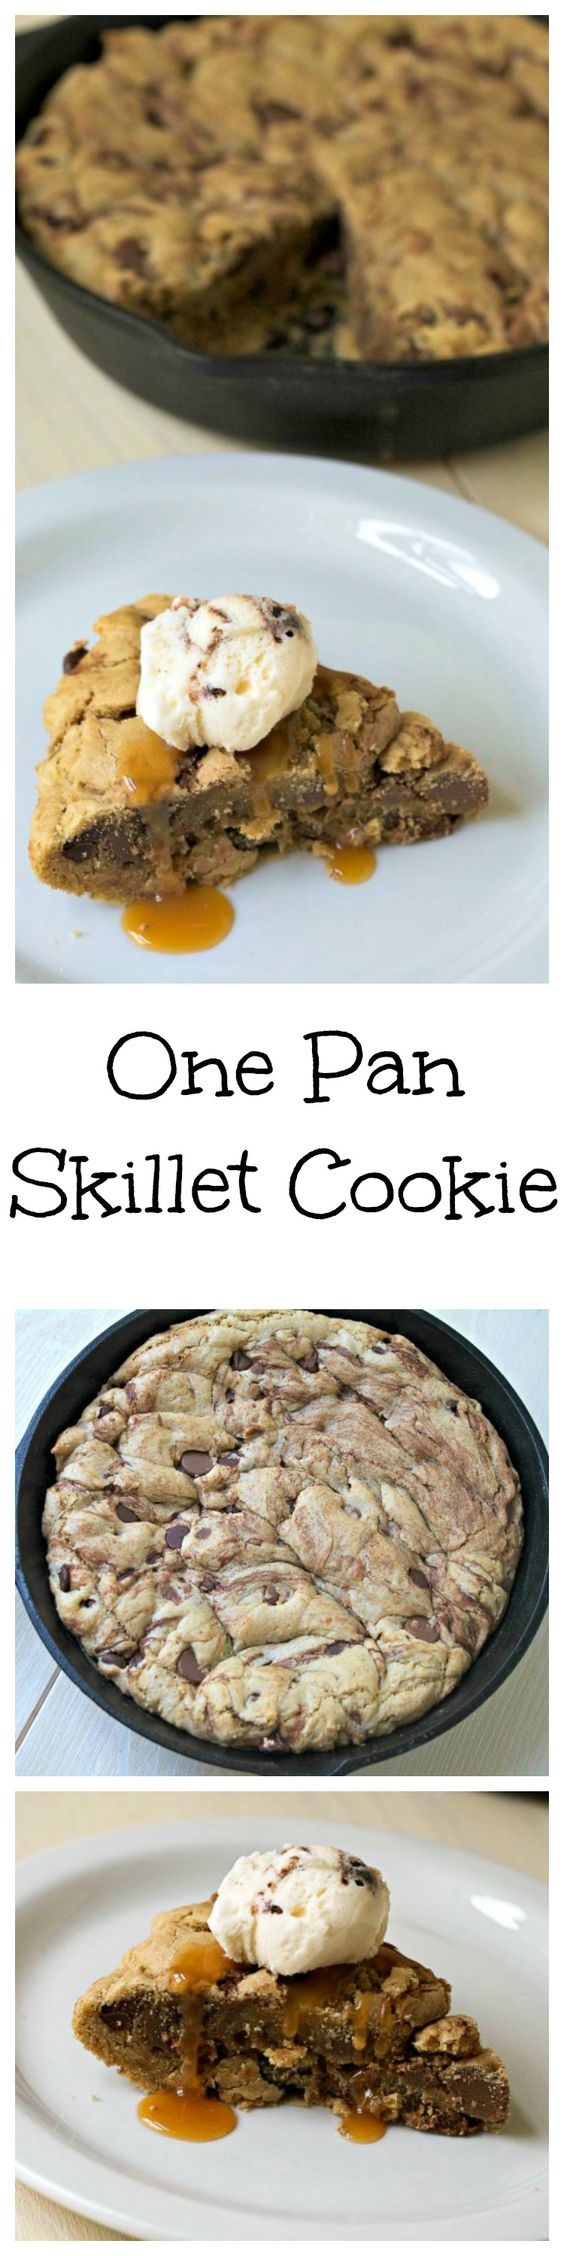 One Pan Skillet Cookie - indulge in this fresh, gooey, chocolaty ...